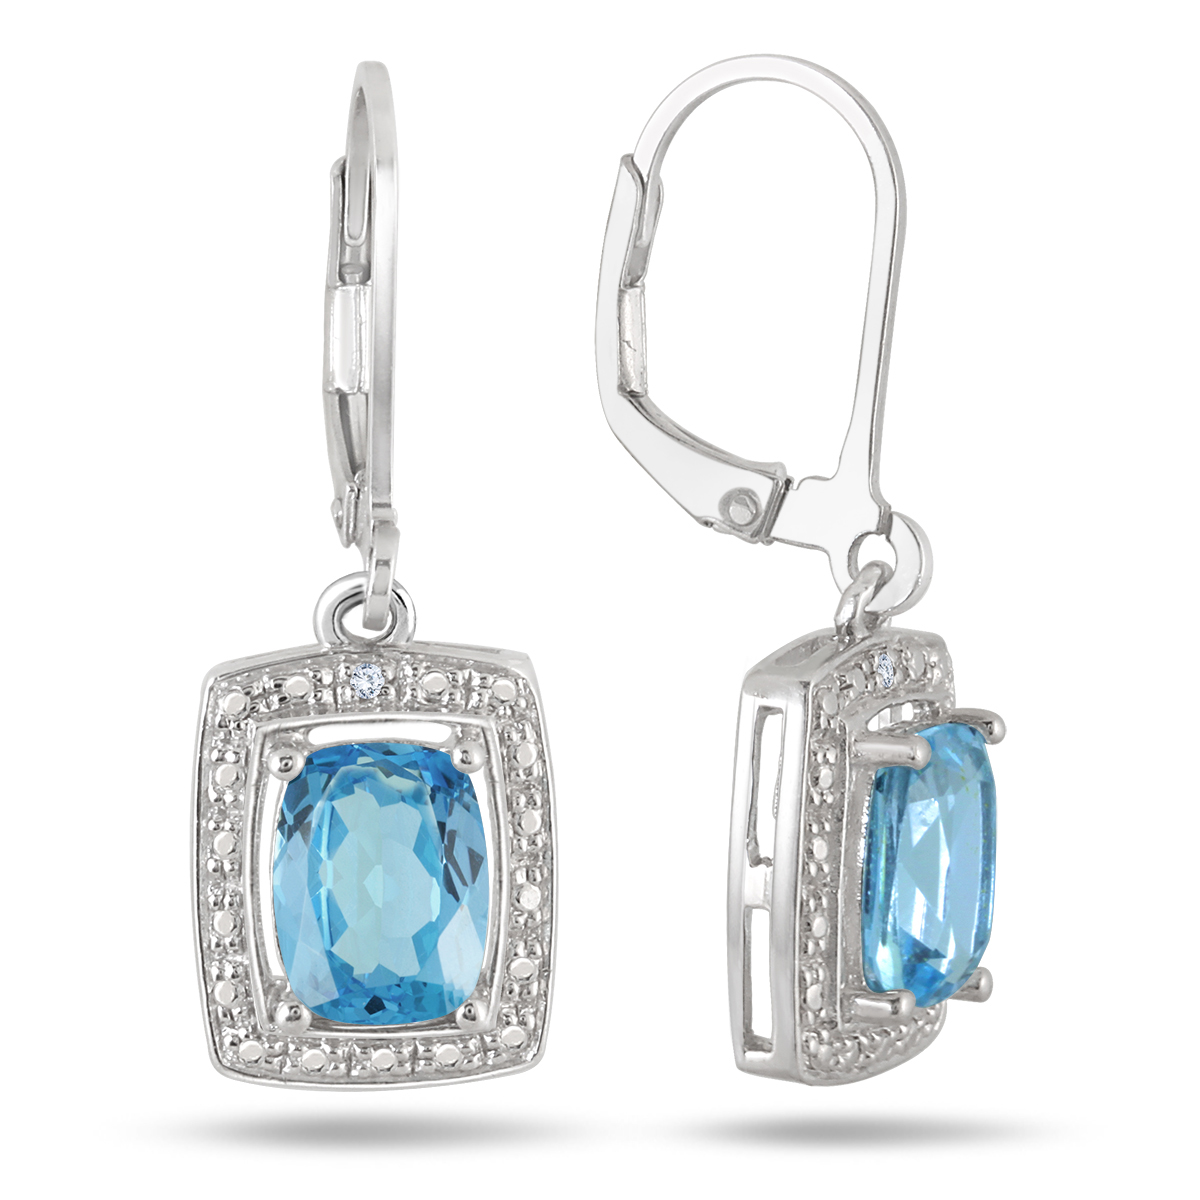 A beautiful pair of genuine gemstone and diamond earrings featuring radiant cut blue topaz gemstone framed in a sterling silver setting set with sparkling white diamonds. Each earring features a center 8x6mm radiant cut blue topaz weighing 2.50 carats in total. 2 diamonds weigh 0.01 carats in total with a J-K-L color, I2-I3 clarity. Earrings secure with durable lever back setting crafted in .925 sterling silver.